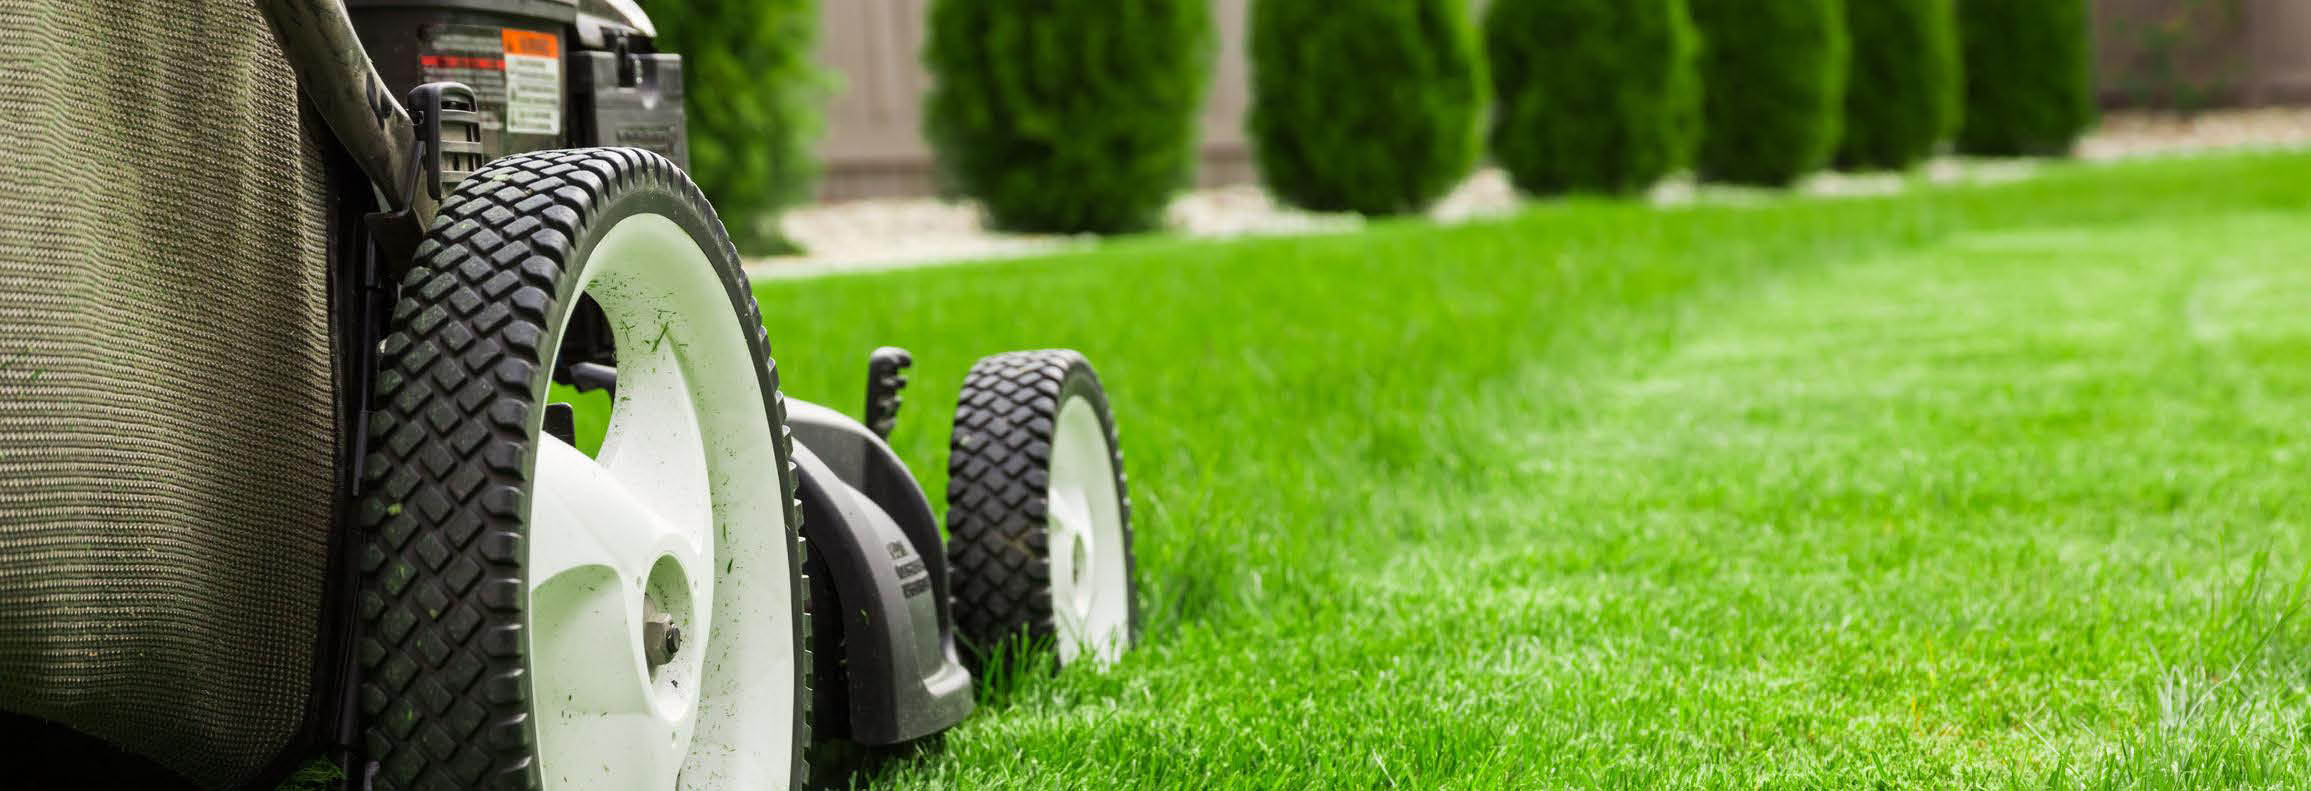 save on tune-ups save on lawn repairs fix my weedeater